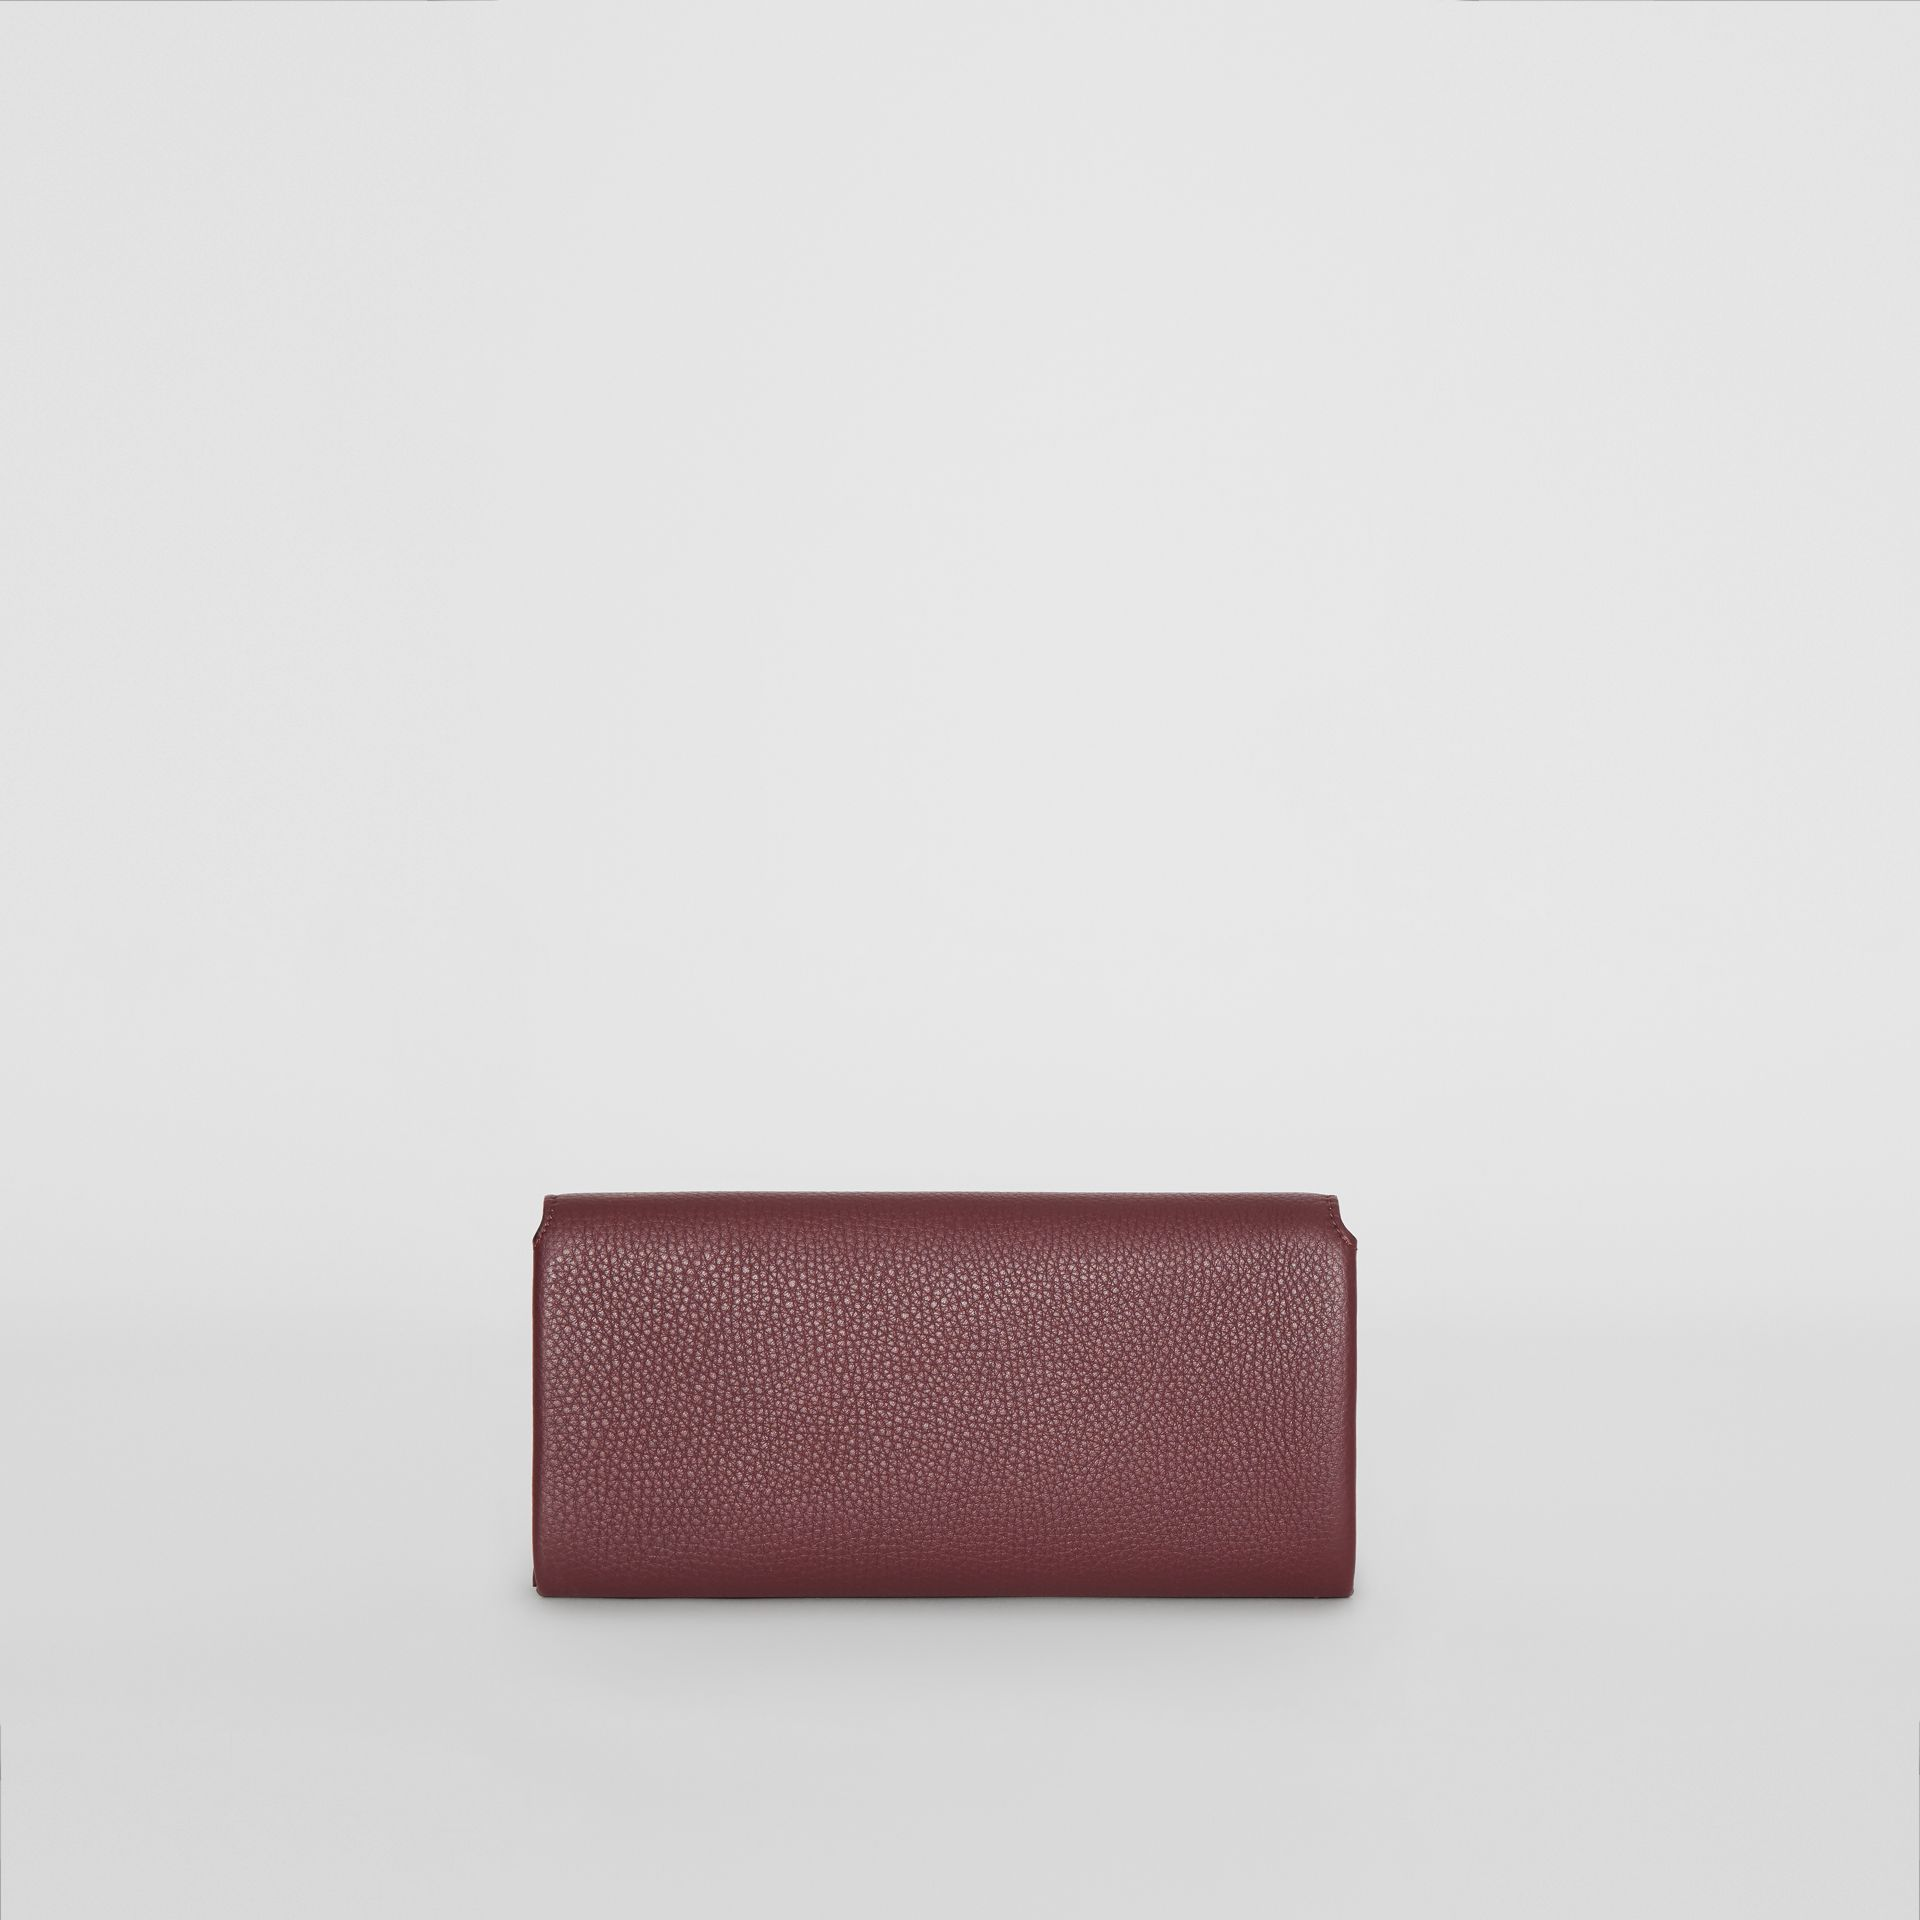 Two-tone Leather Continental Wallet in Deep Claret - Women | Burberry Canada - gallery image 5